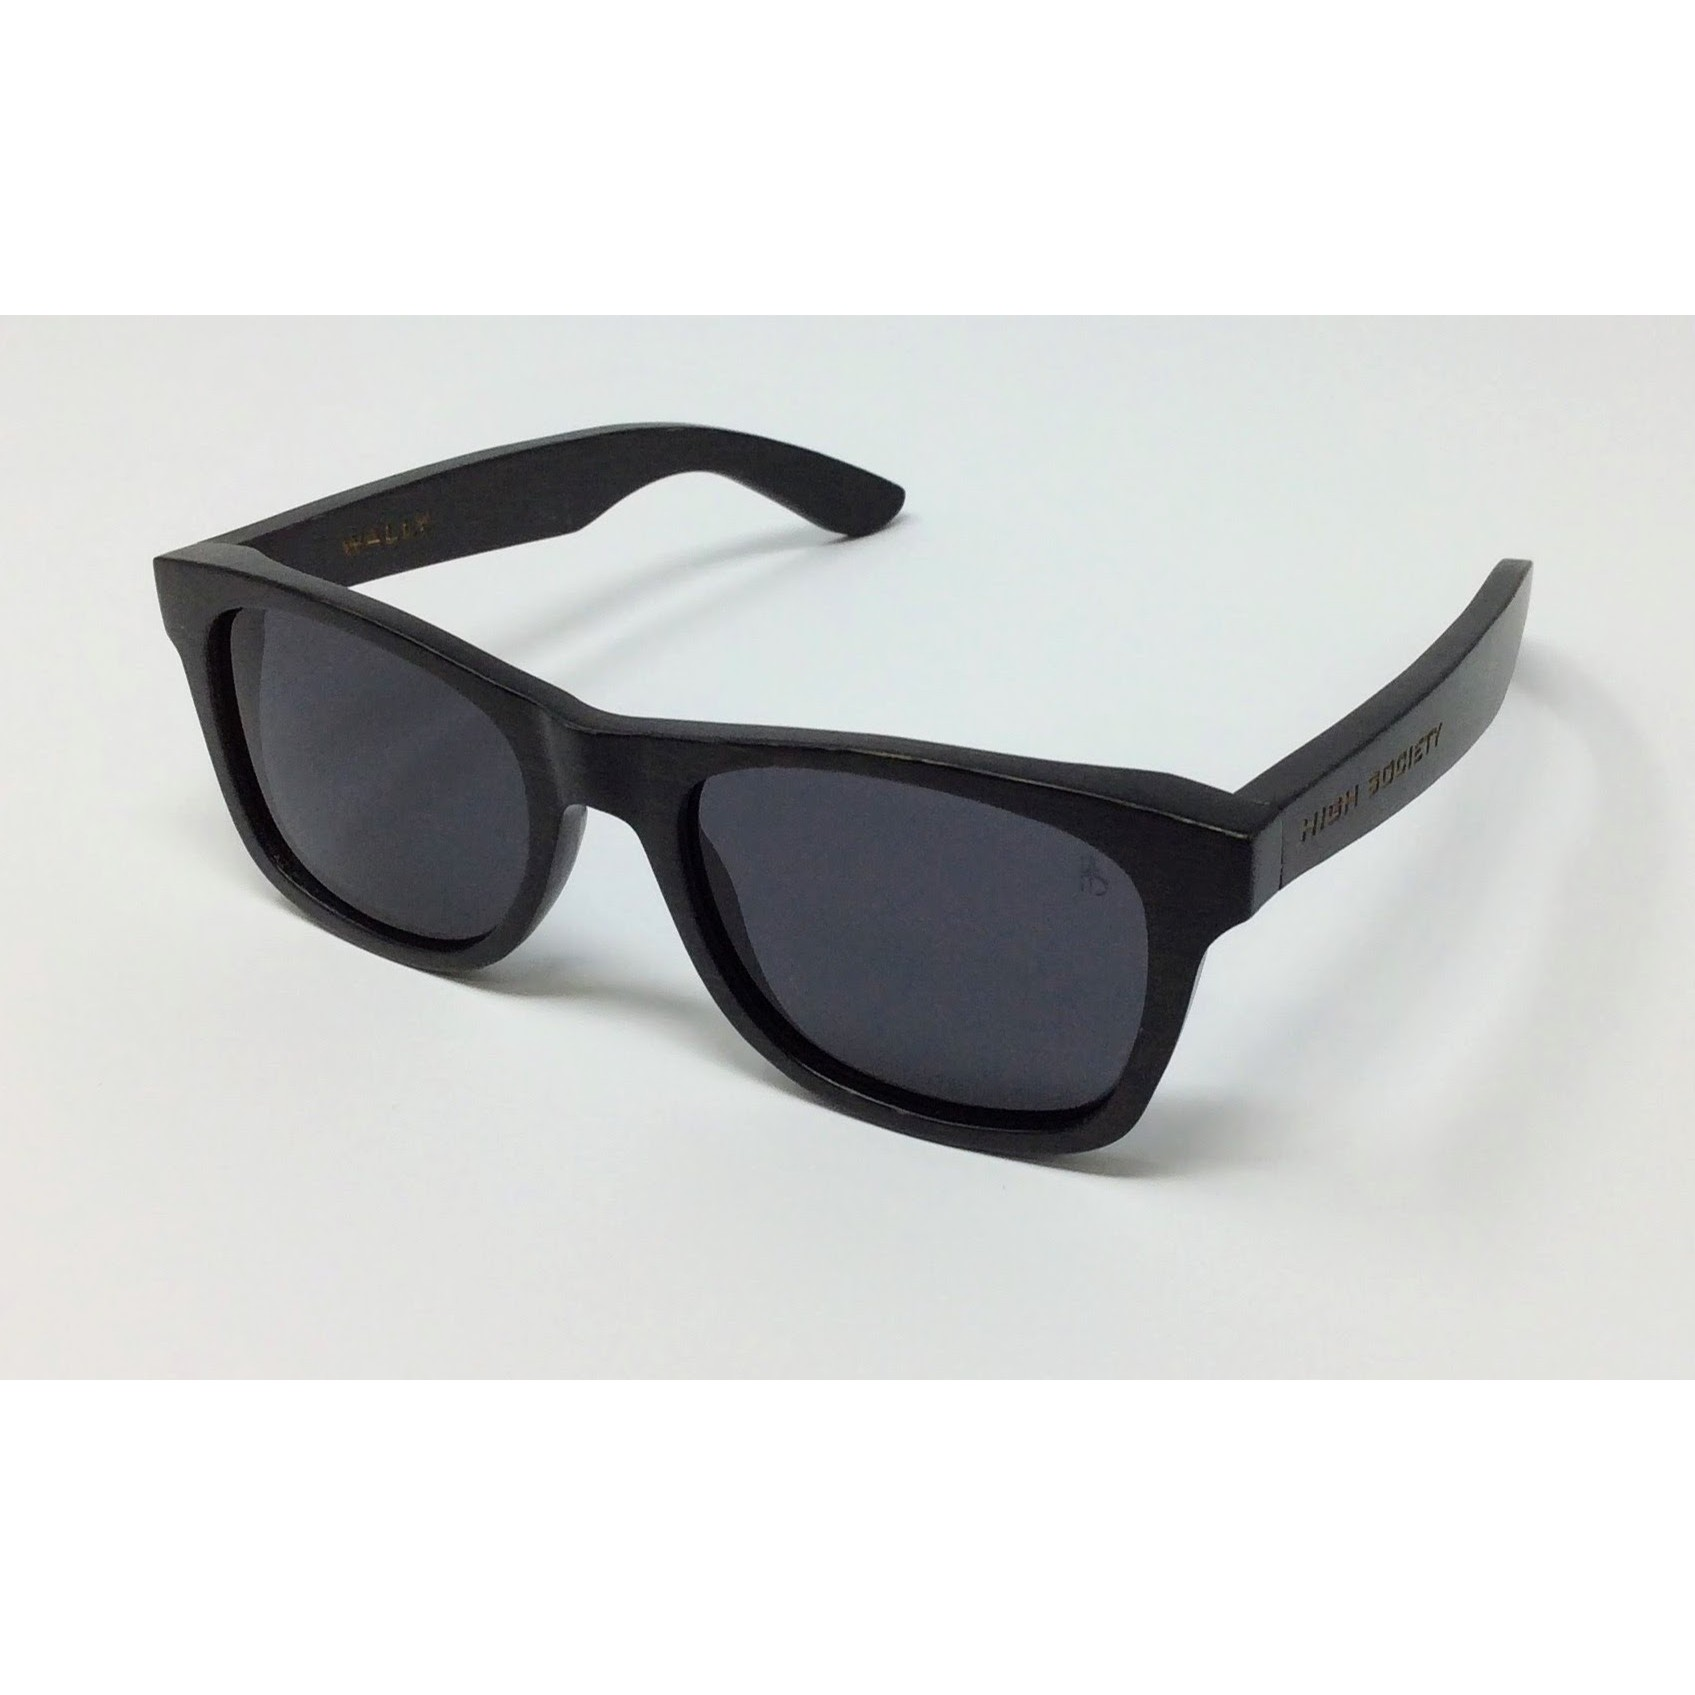 Wally Sunglasses (Grey)